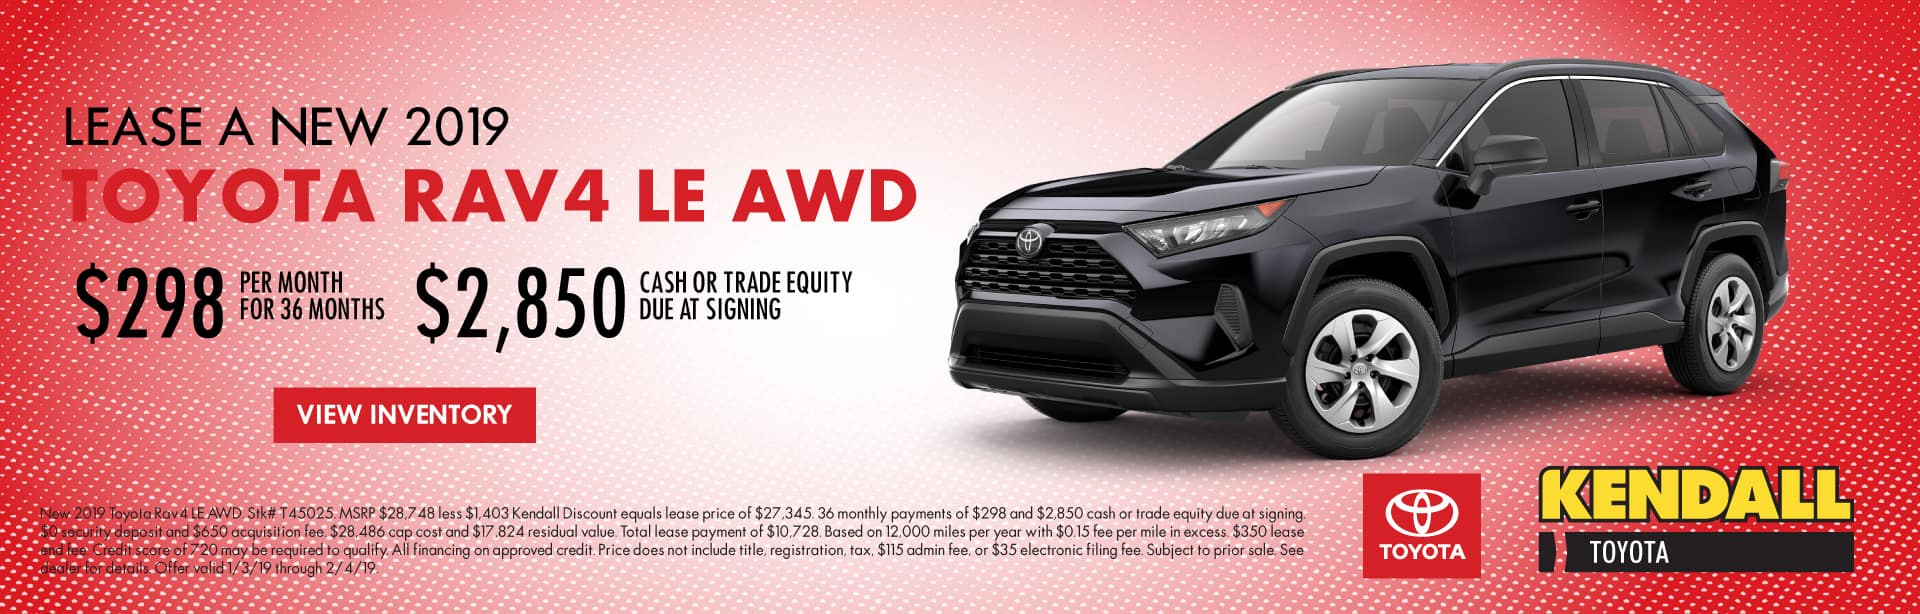 Kendall Toyota Eugene >> Kendall Toyota of Eugene: New Toyota and Used Car ...